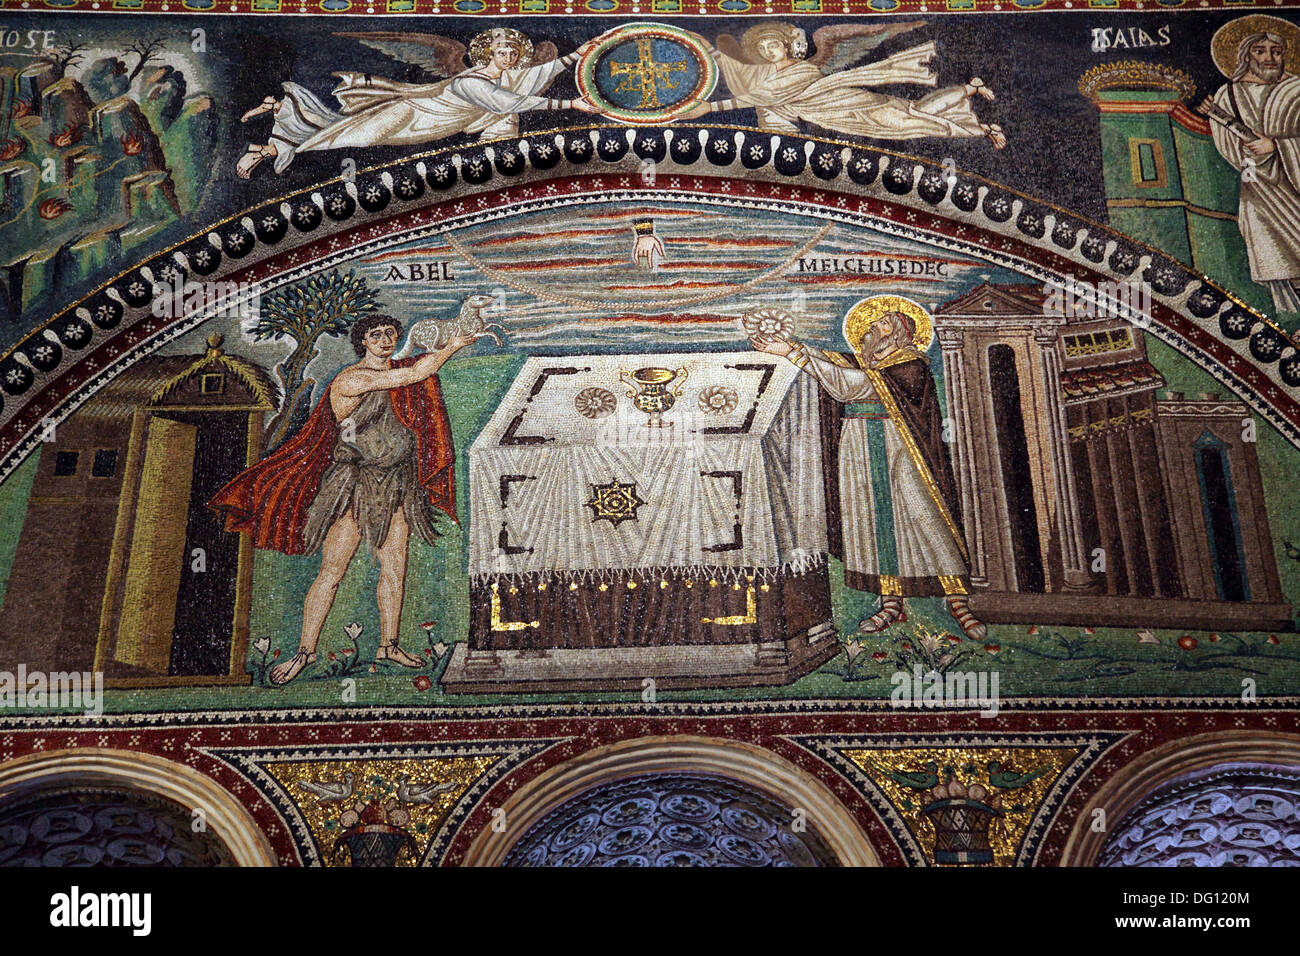 Mosaics on the wall showing Abel sacrificing a lamb and Melchizedek sacrificing bread in the Basilica di San Vitale in Ravenna, - Stock Image